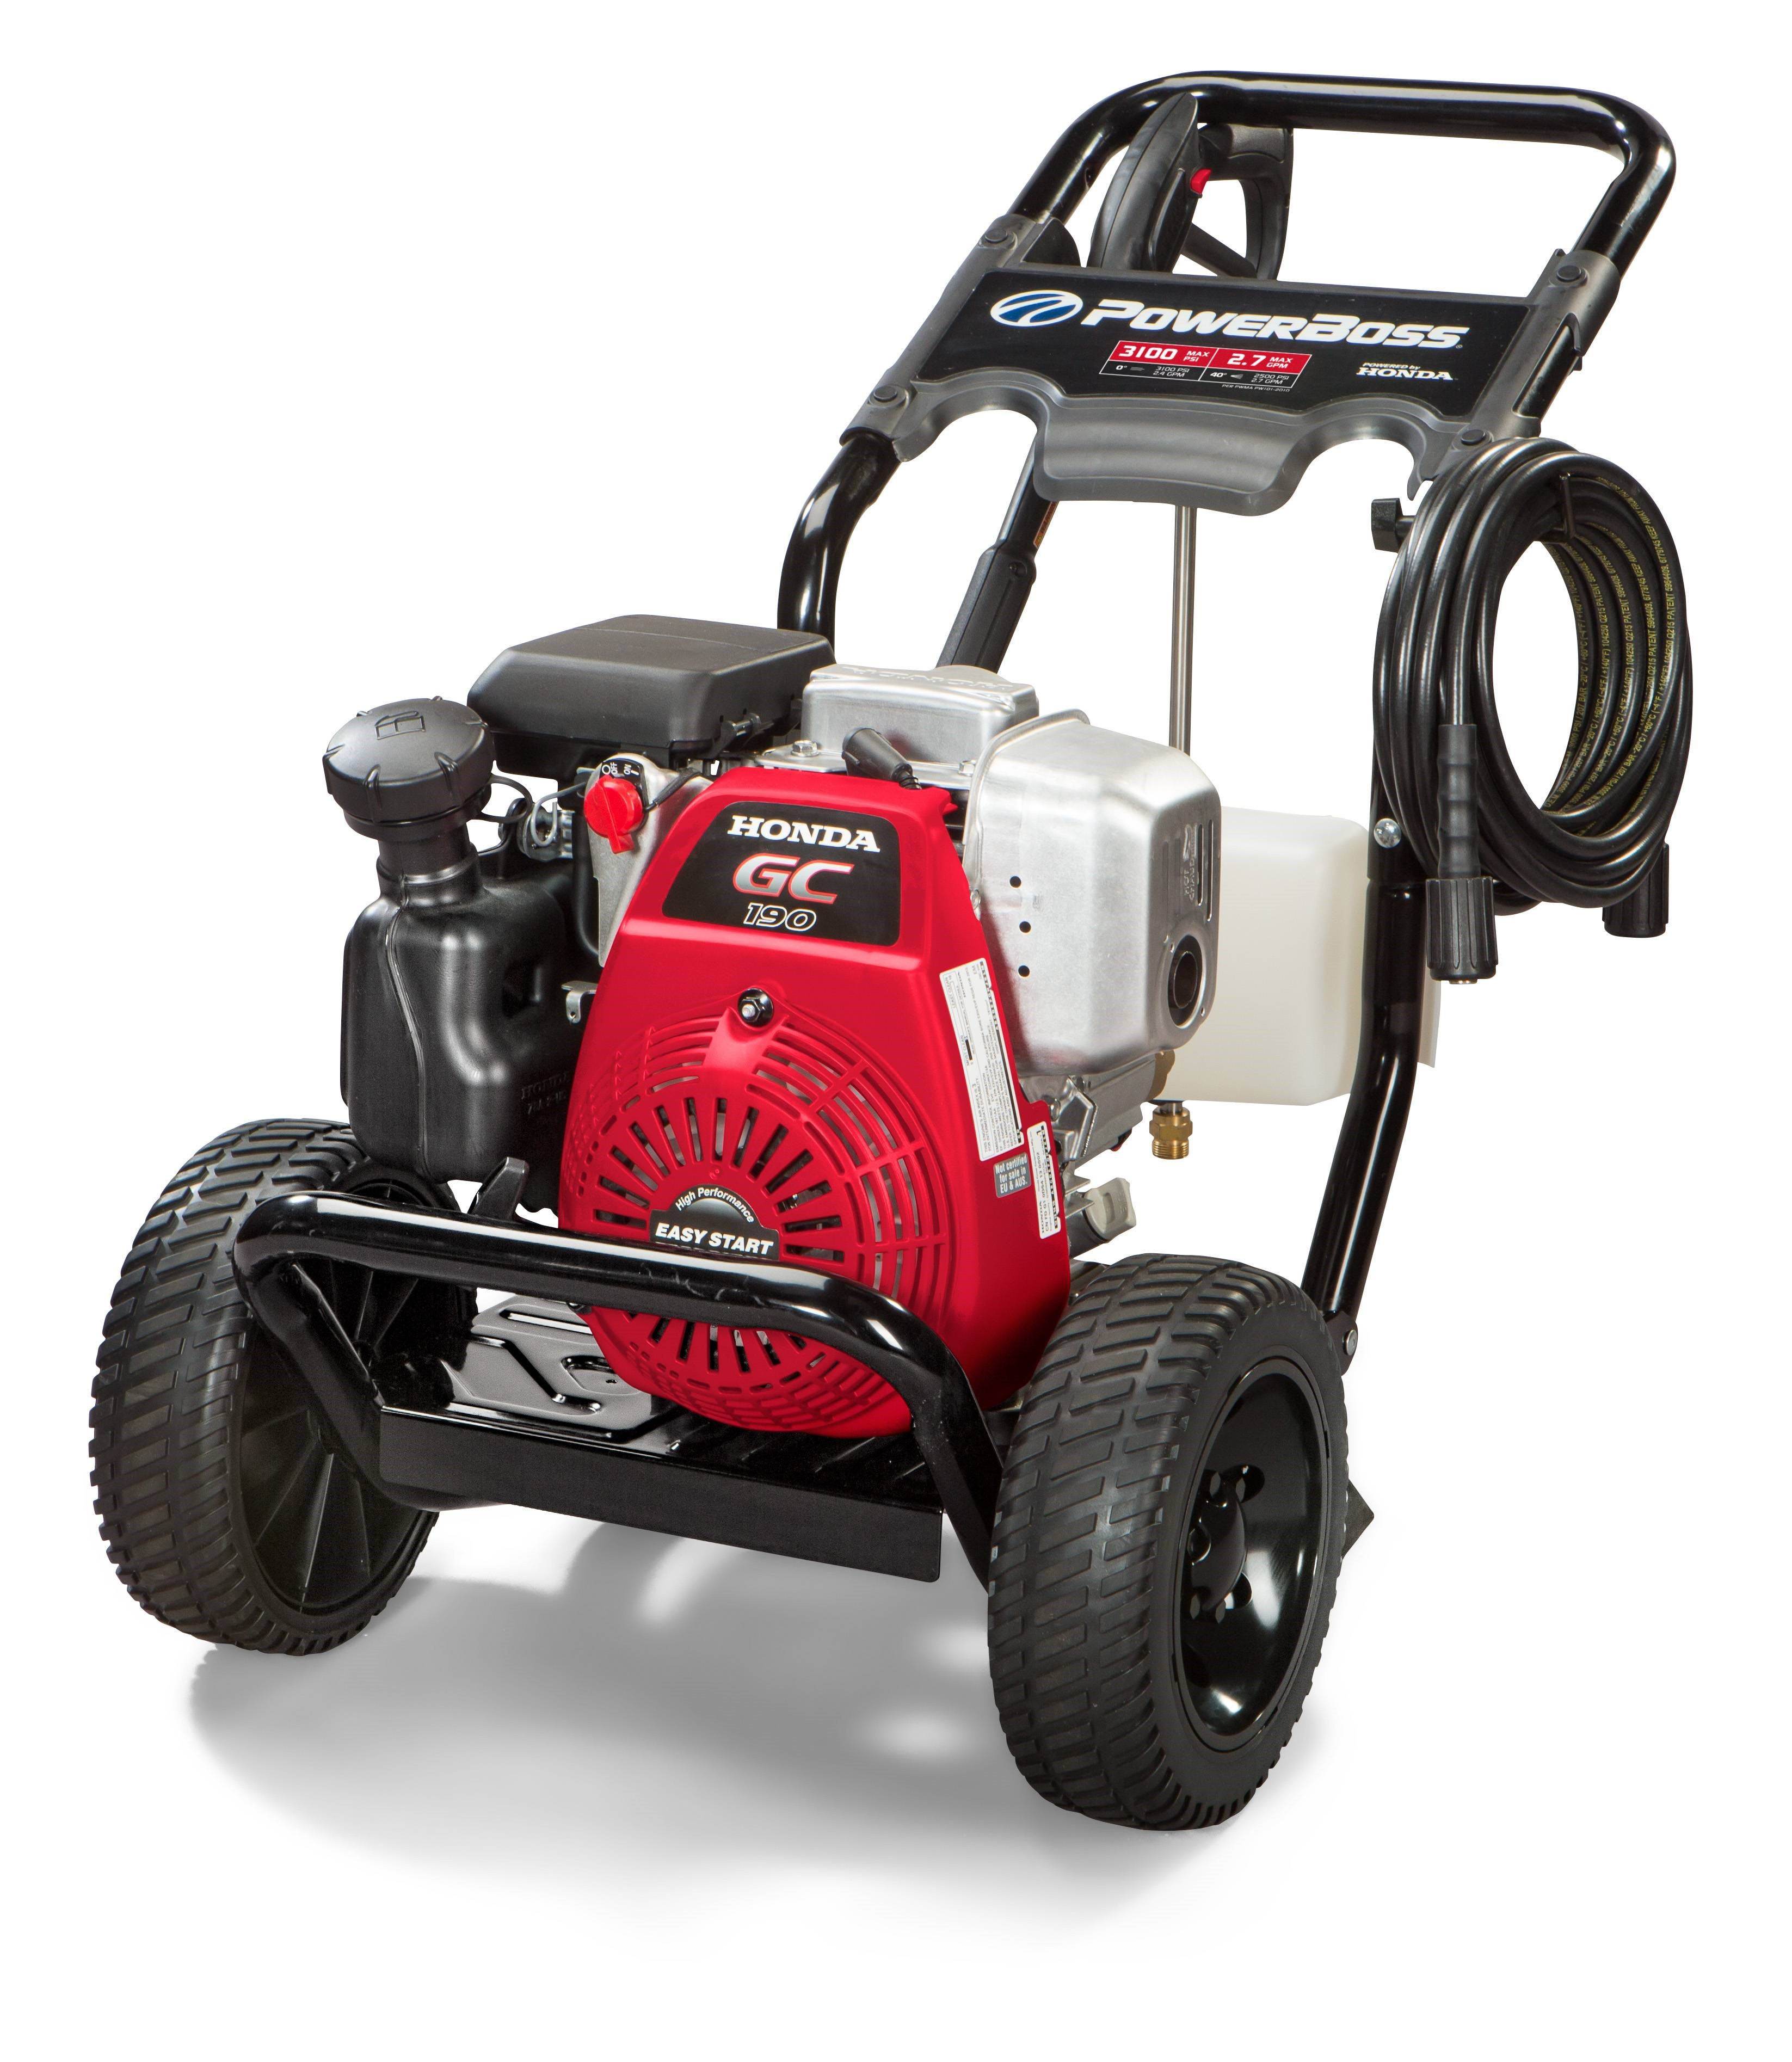 PowerBoss Gas Pressure Washer which has 3100 PSI, 2.7 GPM